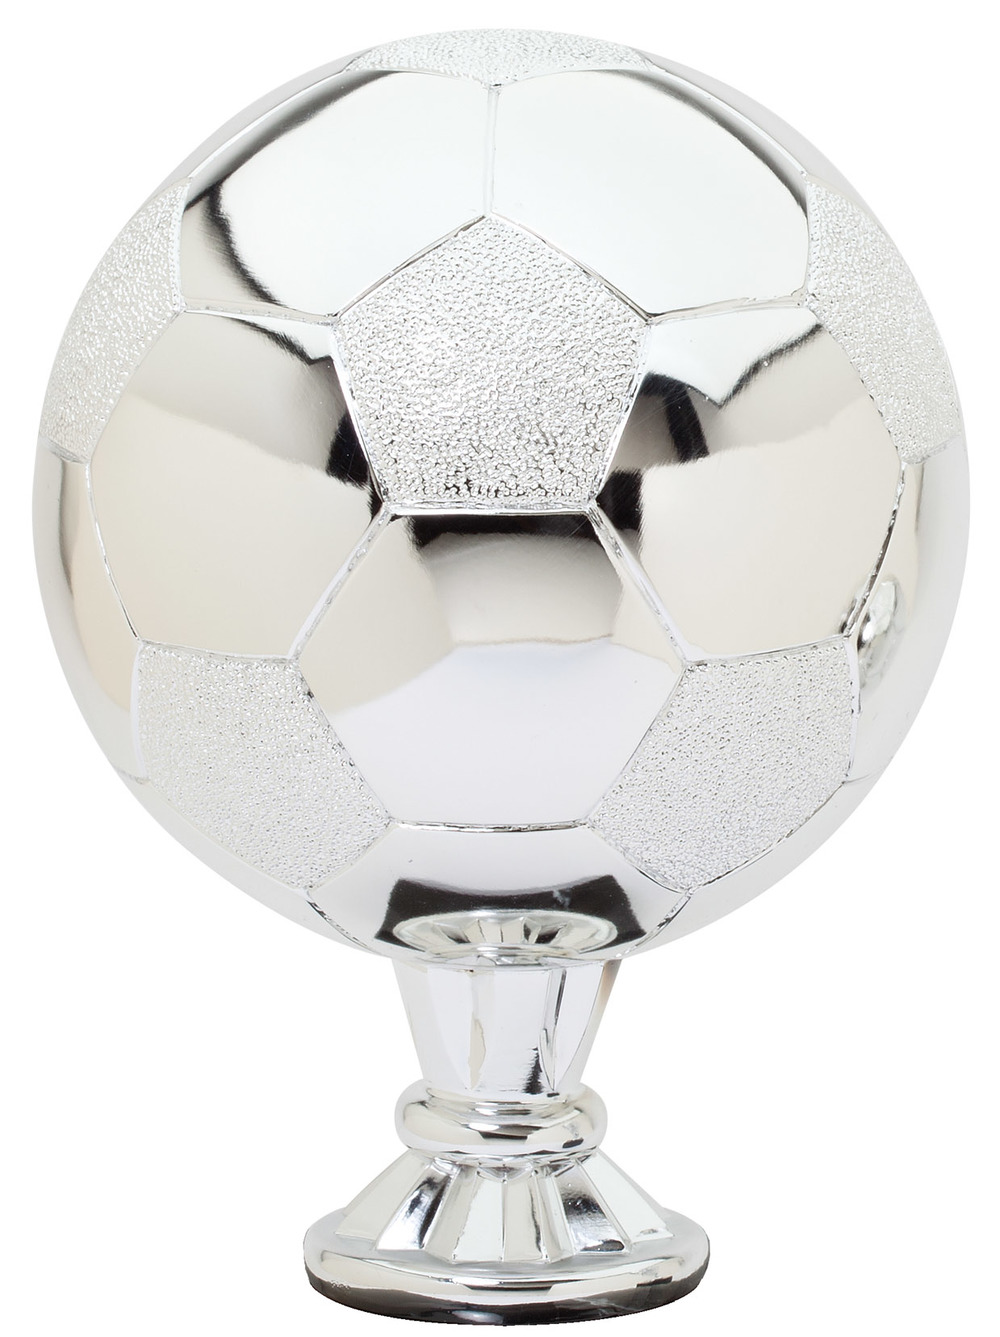 "Soccer - Silver   RG3213 - 11.5"" tall  Price = $109"